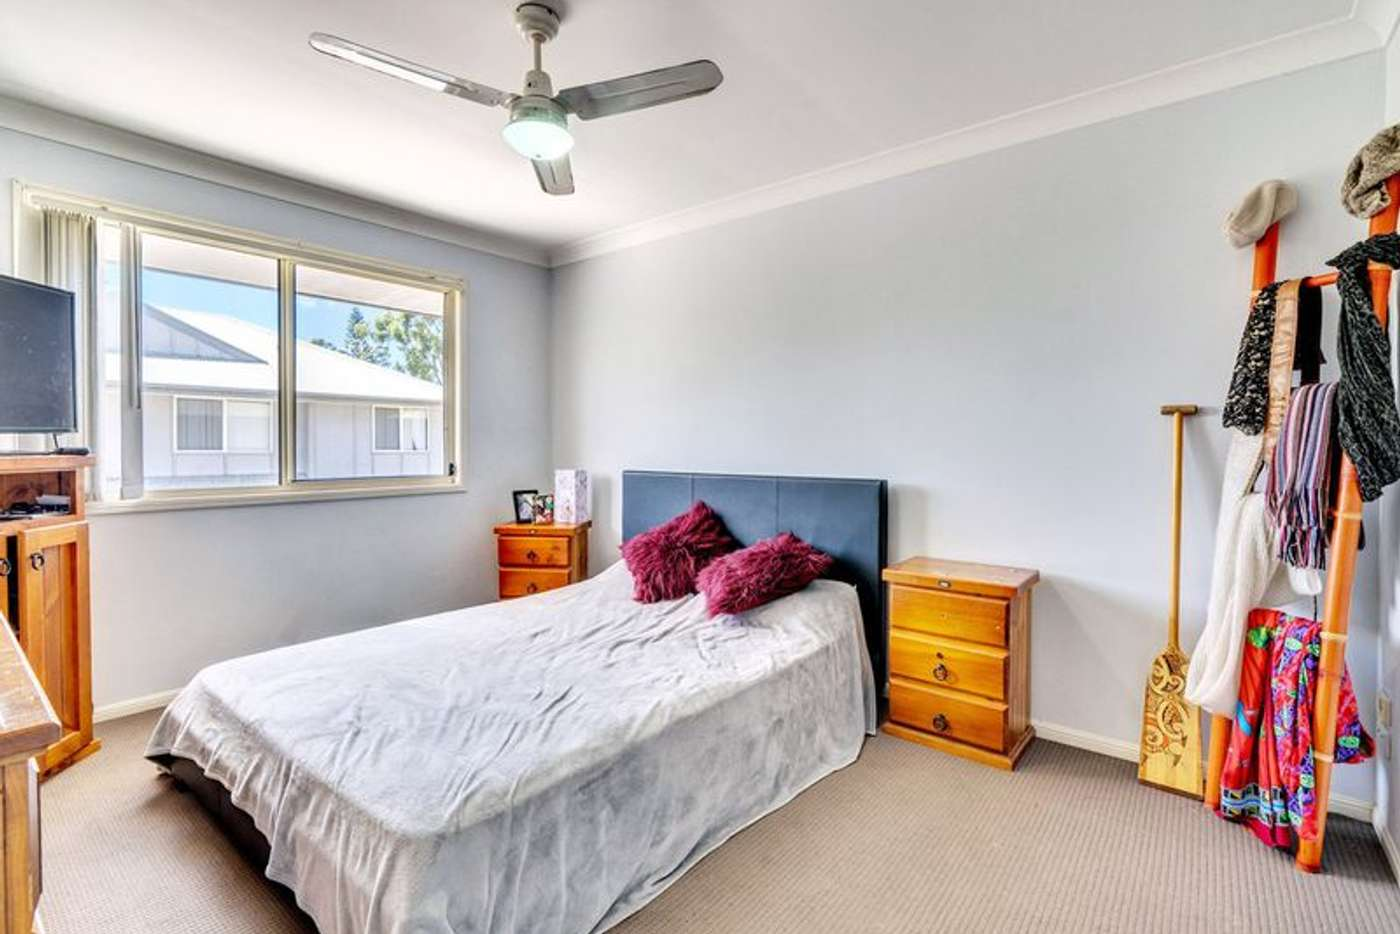 Sixth view of Homely house listing, 1/68 Brigalow Street, Marsden QLD 4132